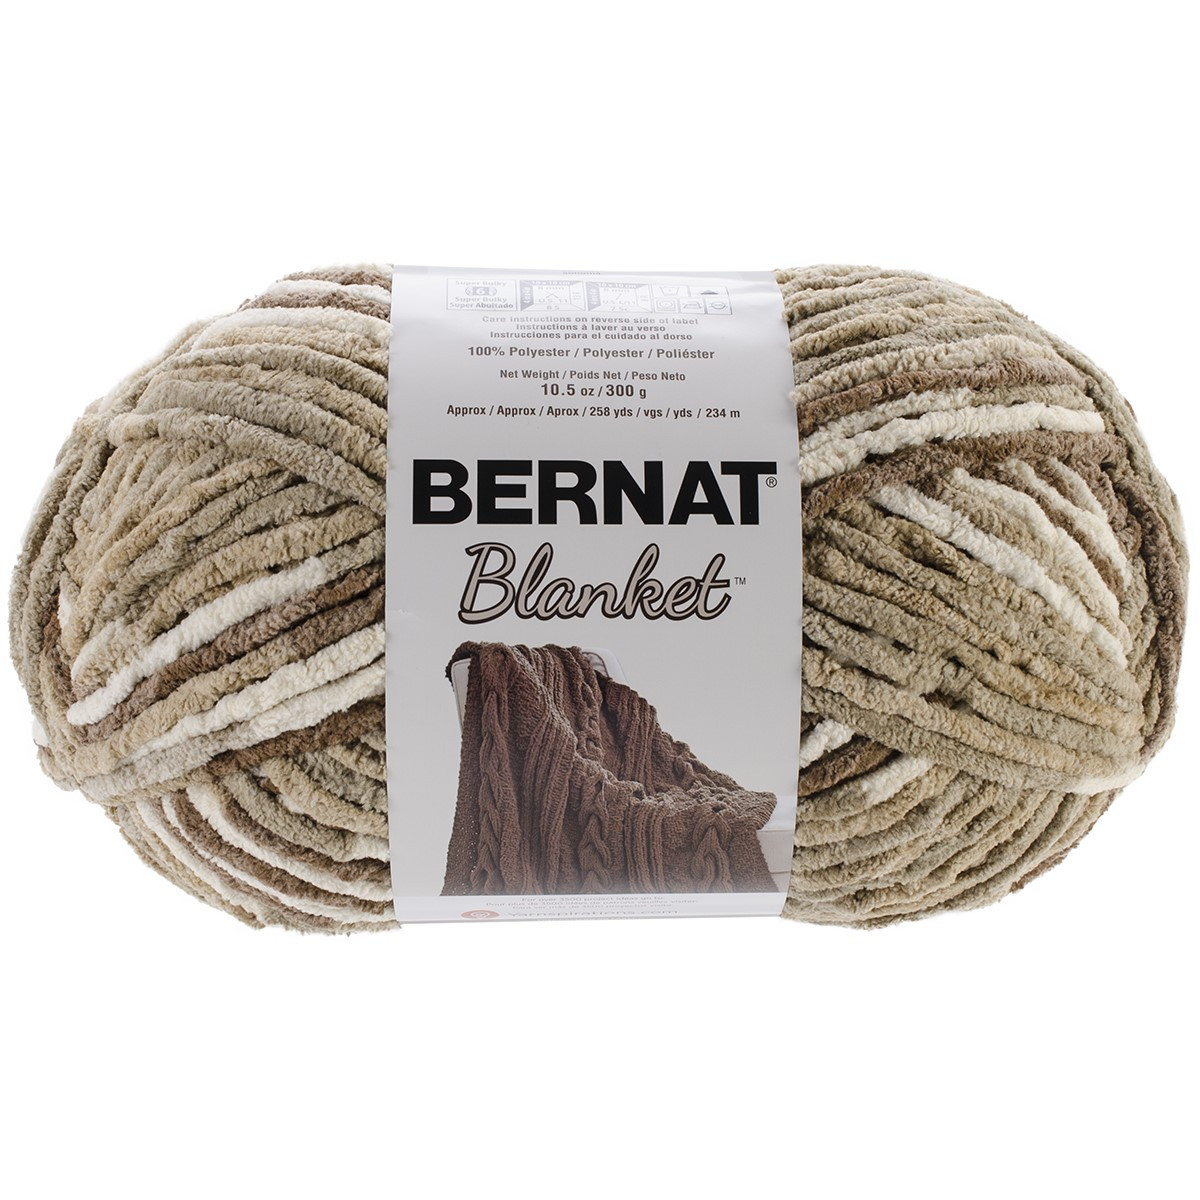 Bernat Baby Blanket Yarn Big Ball Fresh Bernat Blanket Big Ball Yarn Of Awesome 48 Pictures Bernat Baby Blanket Yarn Big Ball